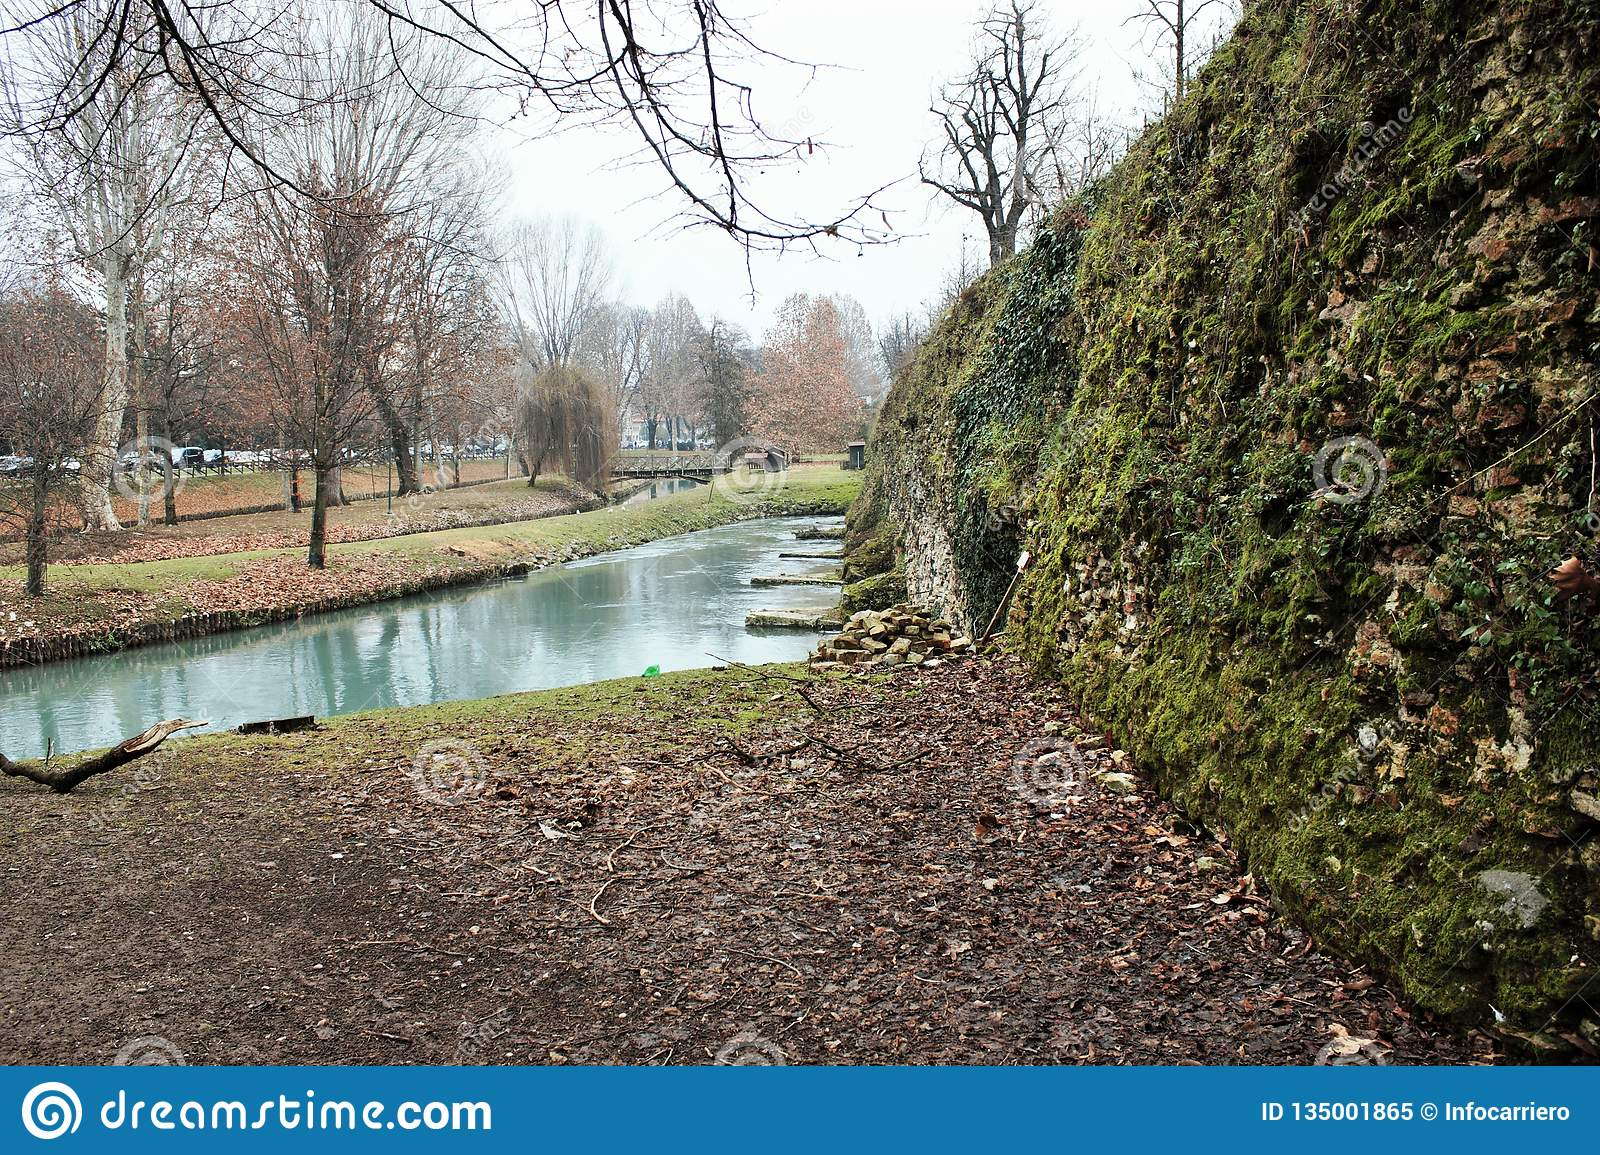 The city walls of Treviso, is the complex of defensive works erected over the centuries to defend the city from enemy attacks